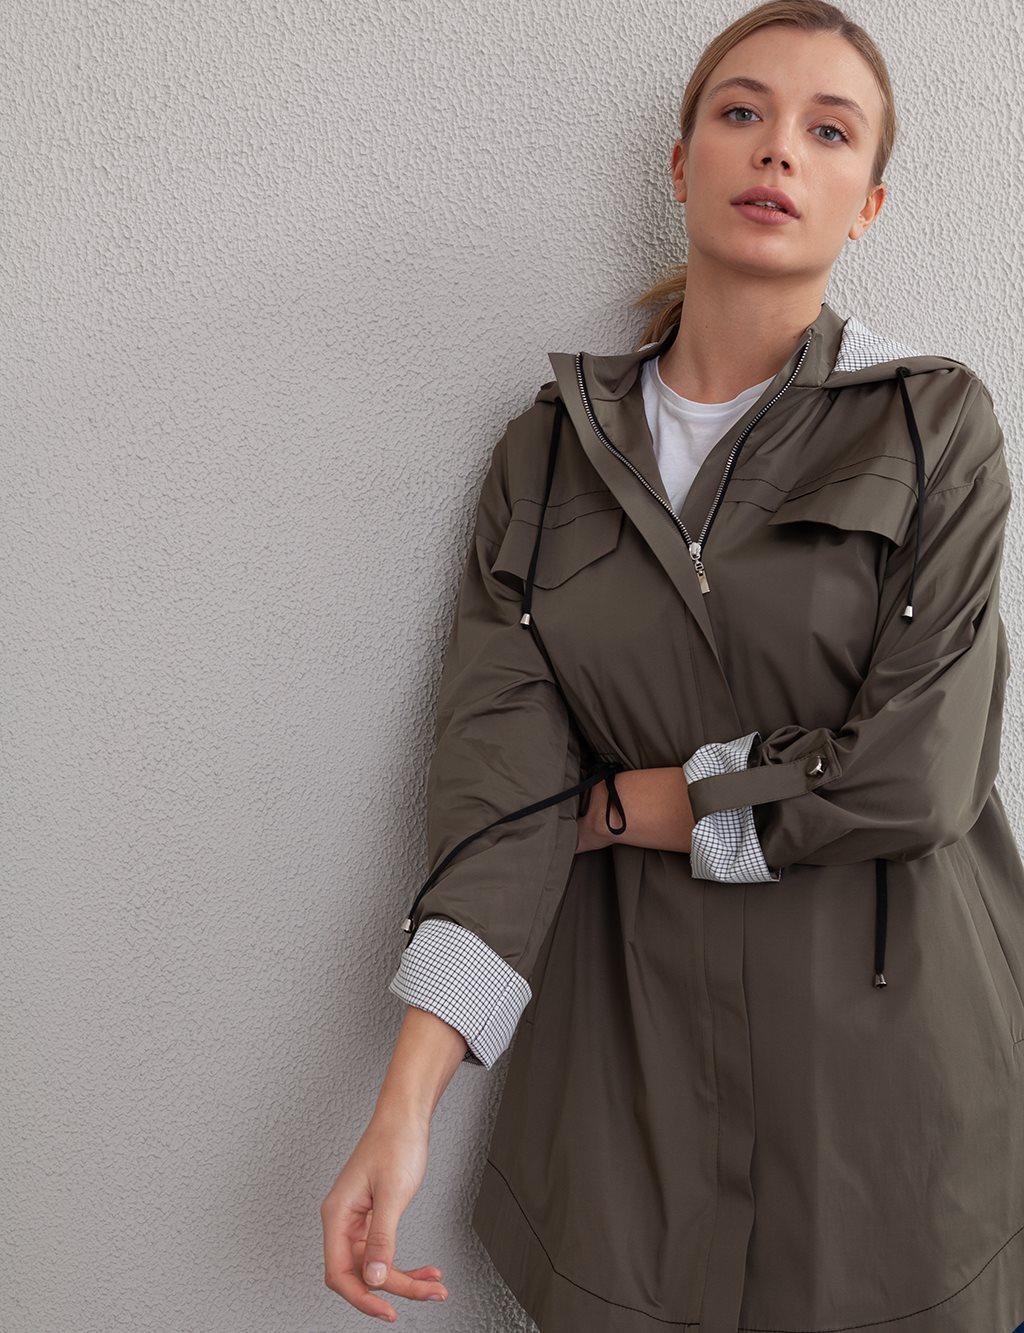 KYR Hooded Sport Trench Coat A20 74003 Green